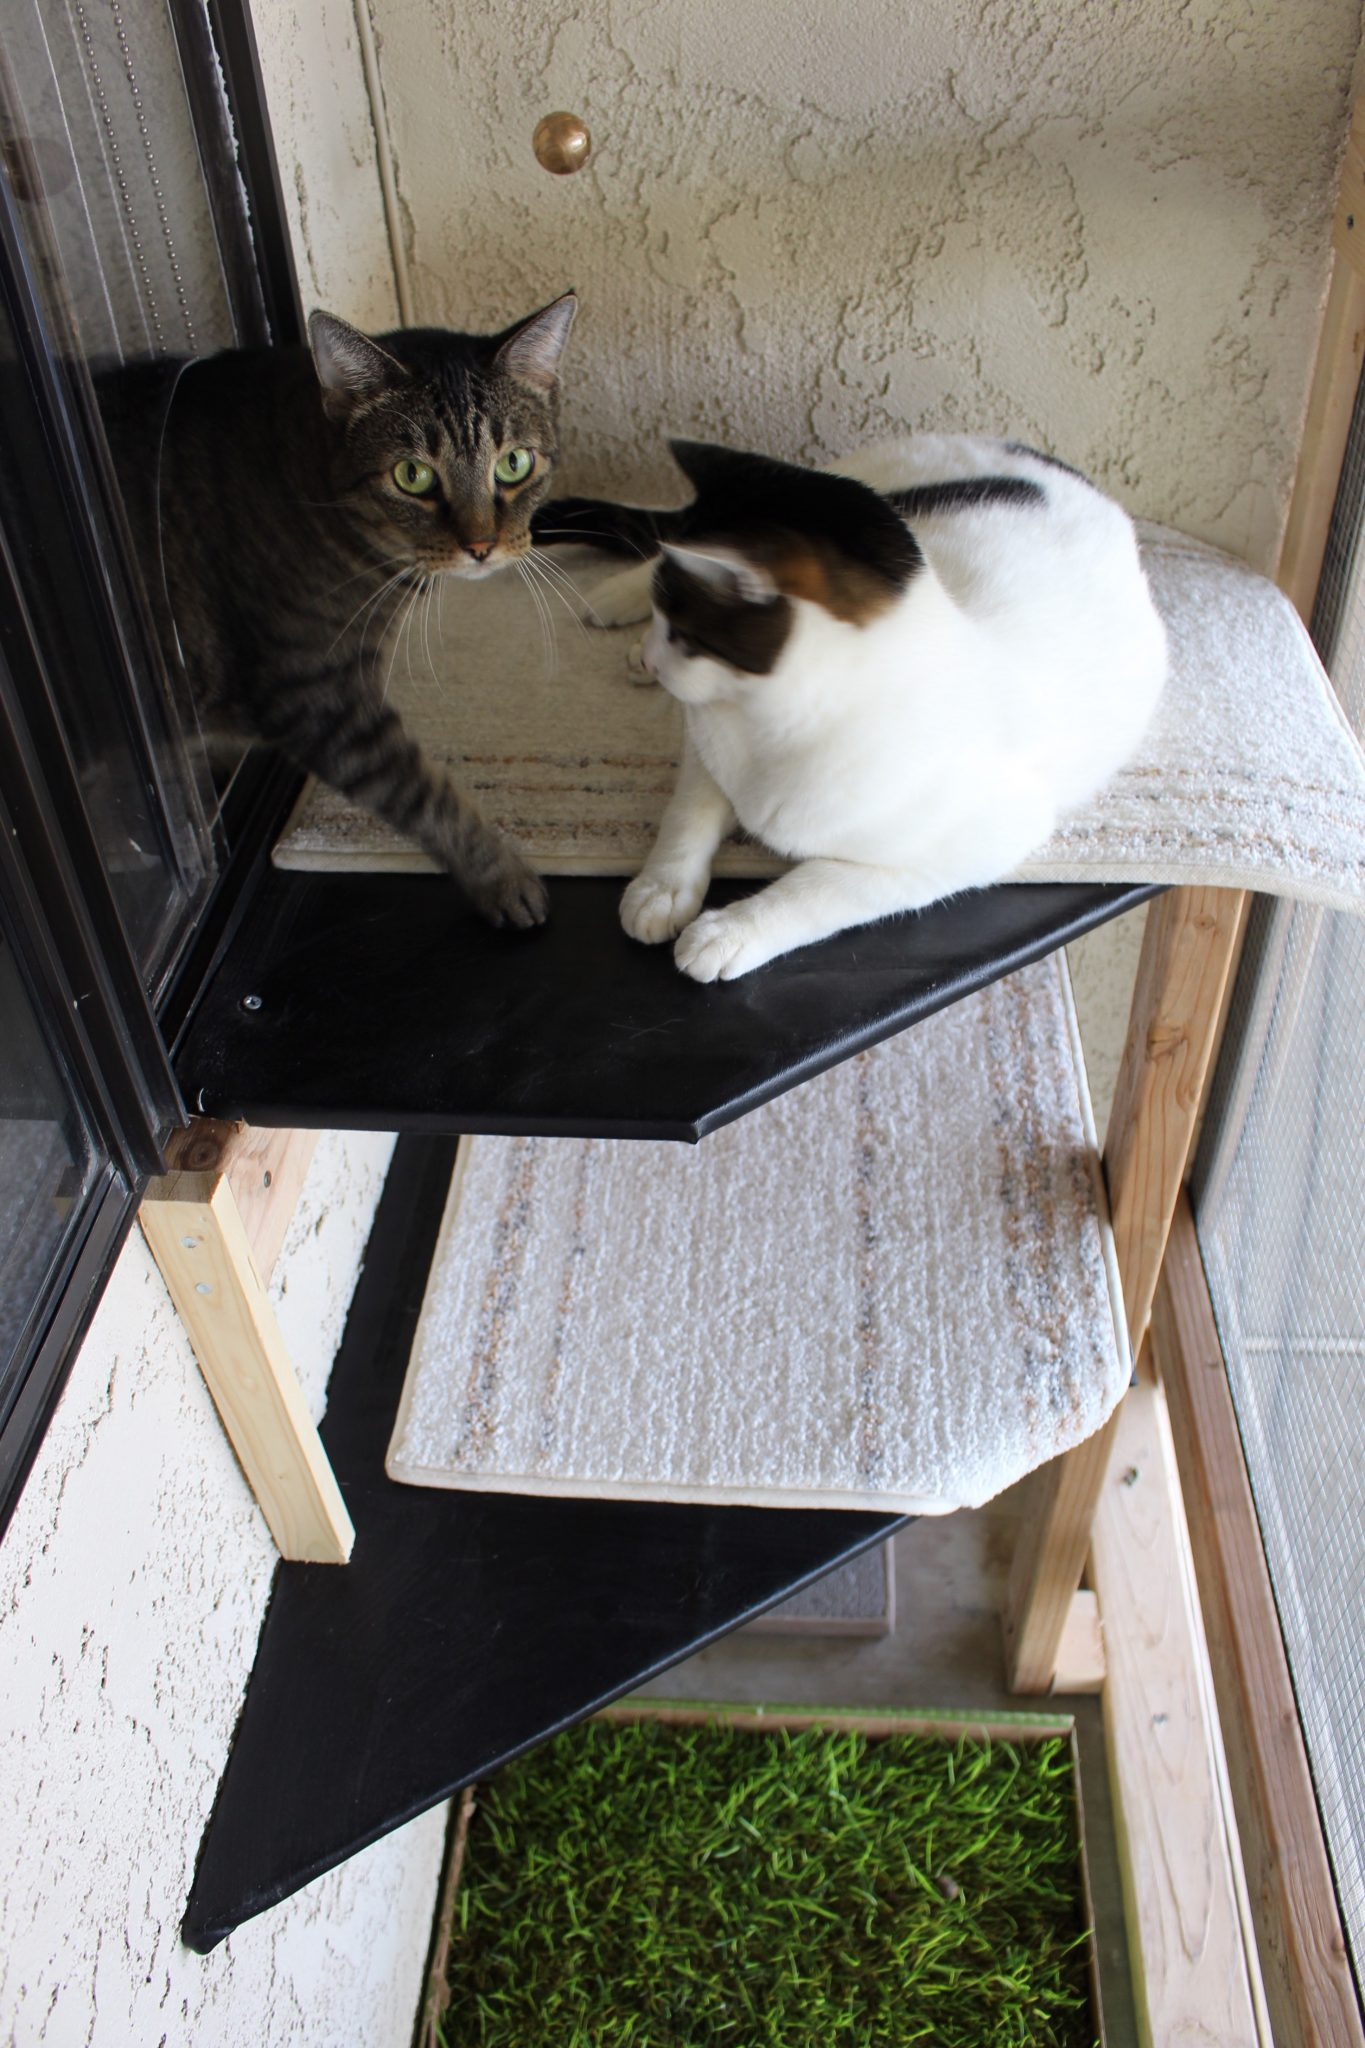 Georgie and Frankie took to their catio right away, their owner Alicia Haney says. (Photo: Alicia Haney)